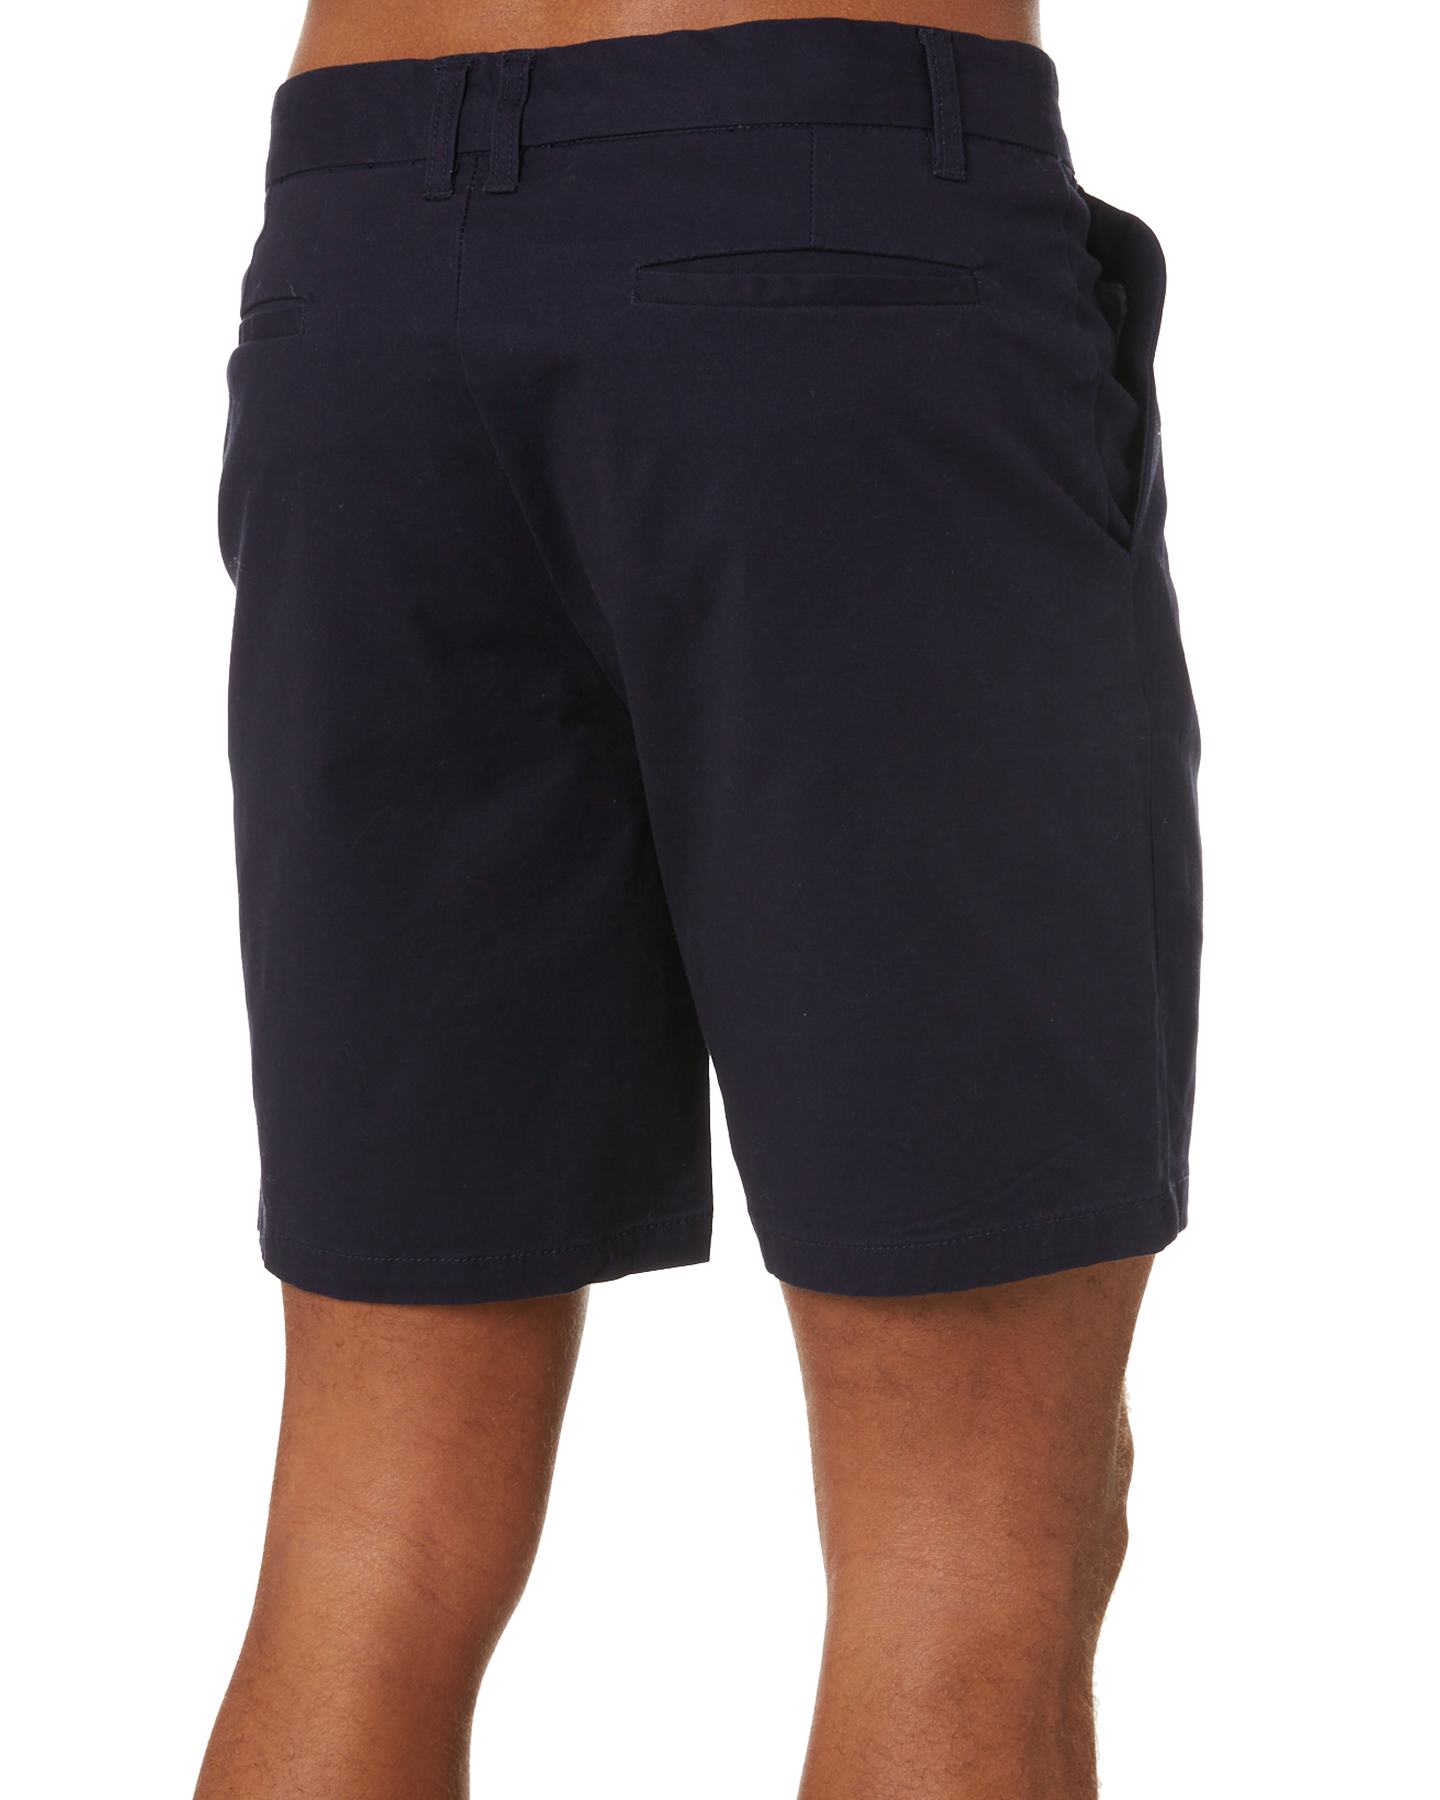 New-Swell-Men-039-s-Dandy-Mens-Chino-Short-Cotton-Fitted-Elastane-Blue thumbnail 23